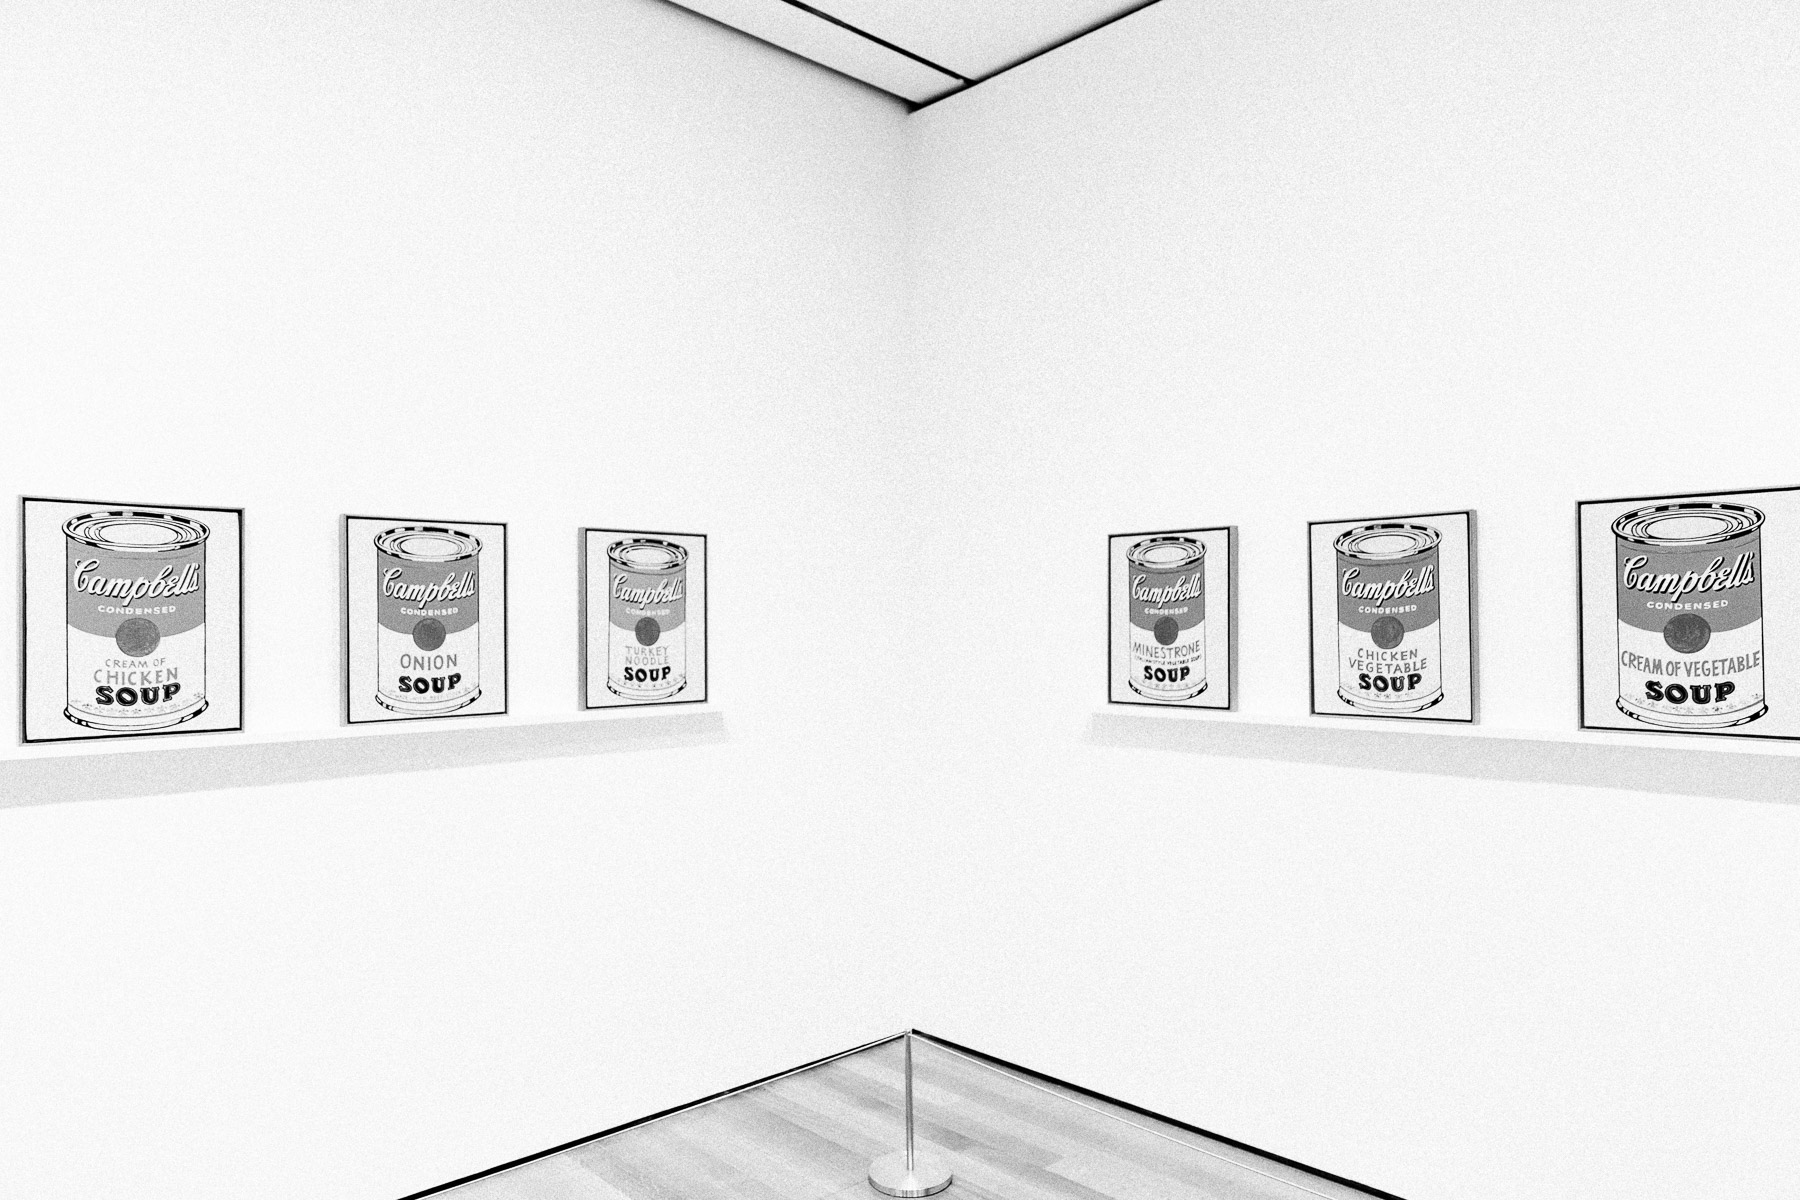 minimal-photography-andy-warhol-cambell-cans-moma-museum.jpg